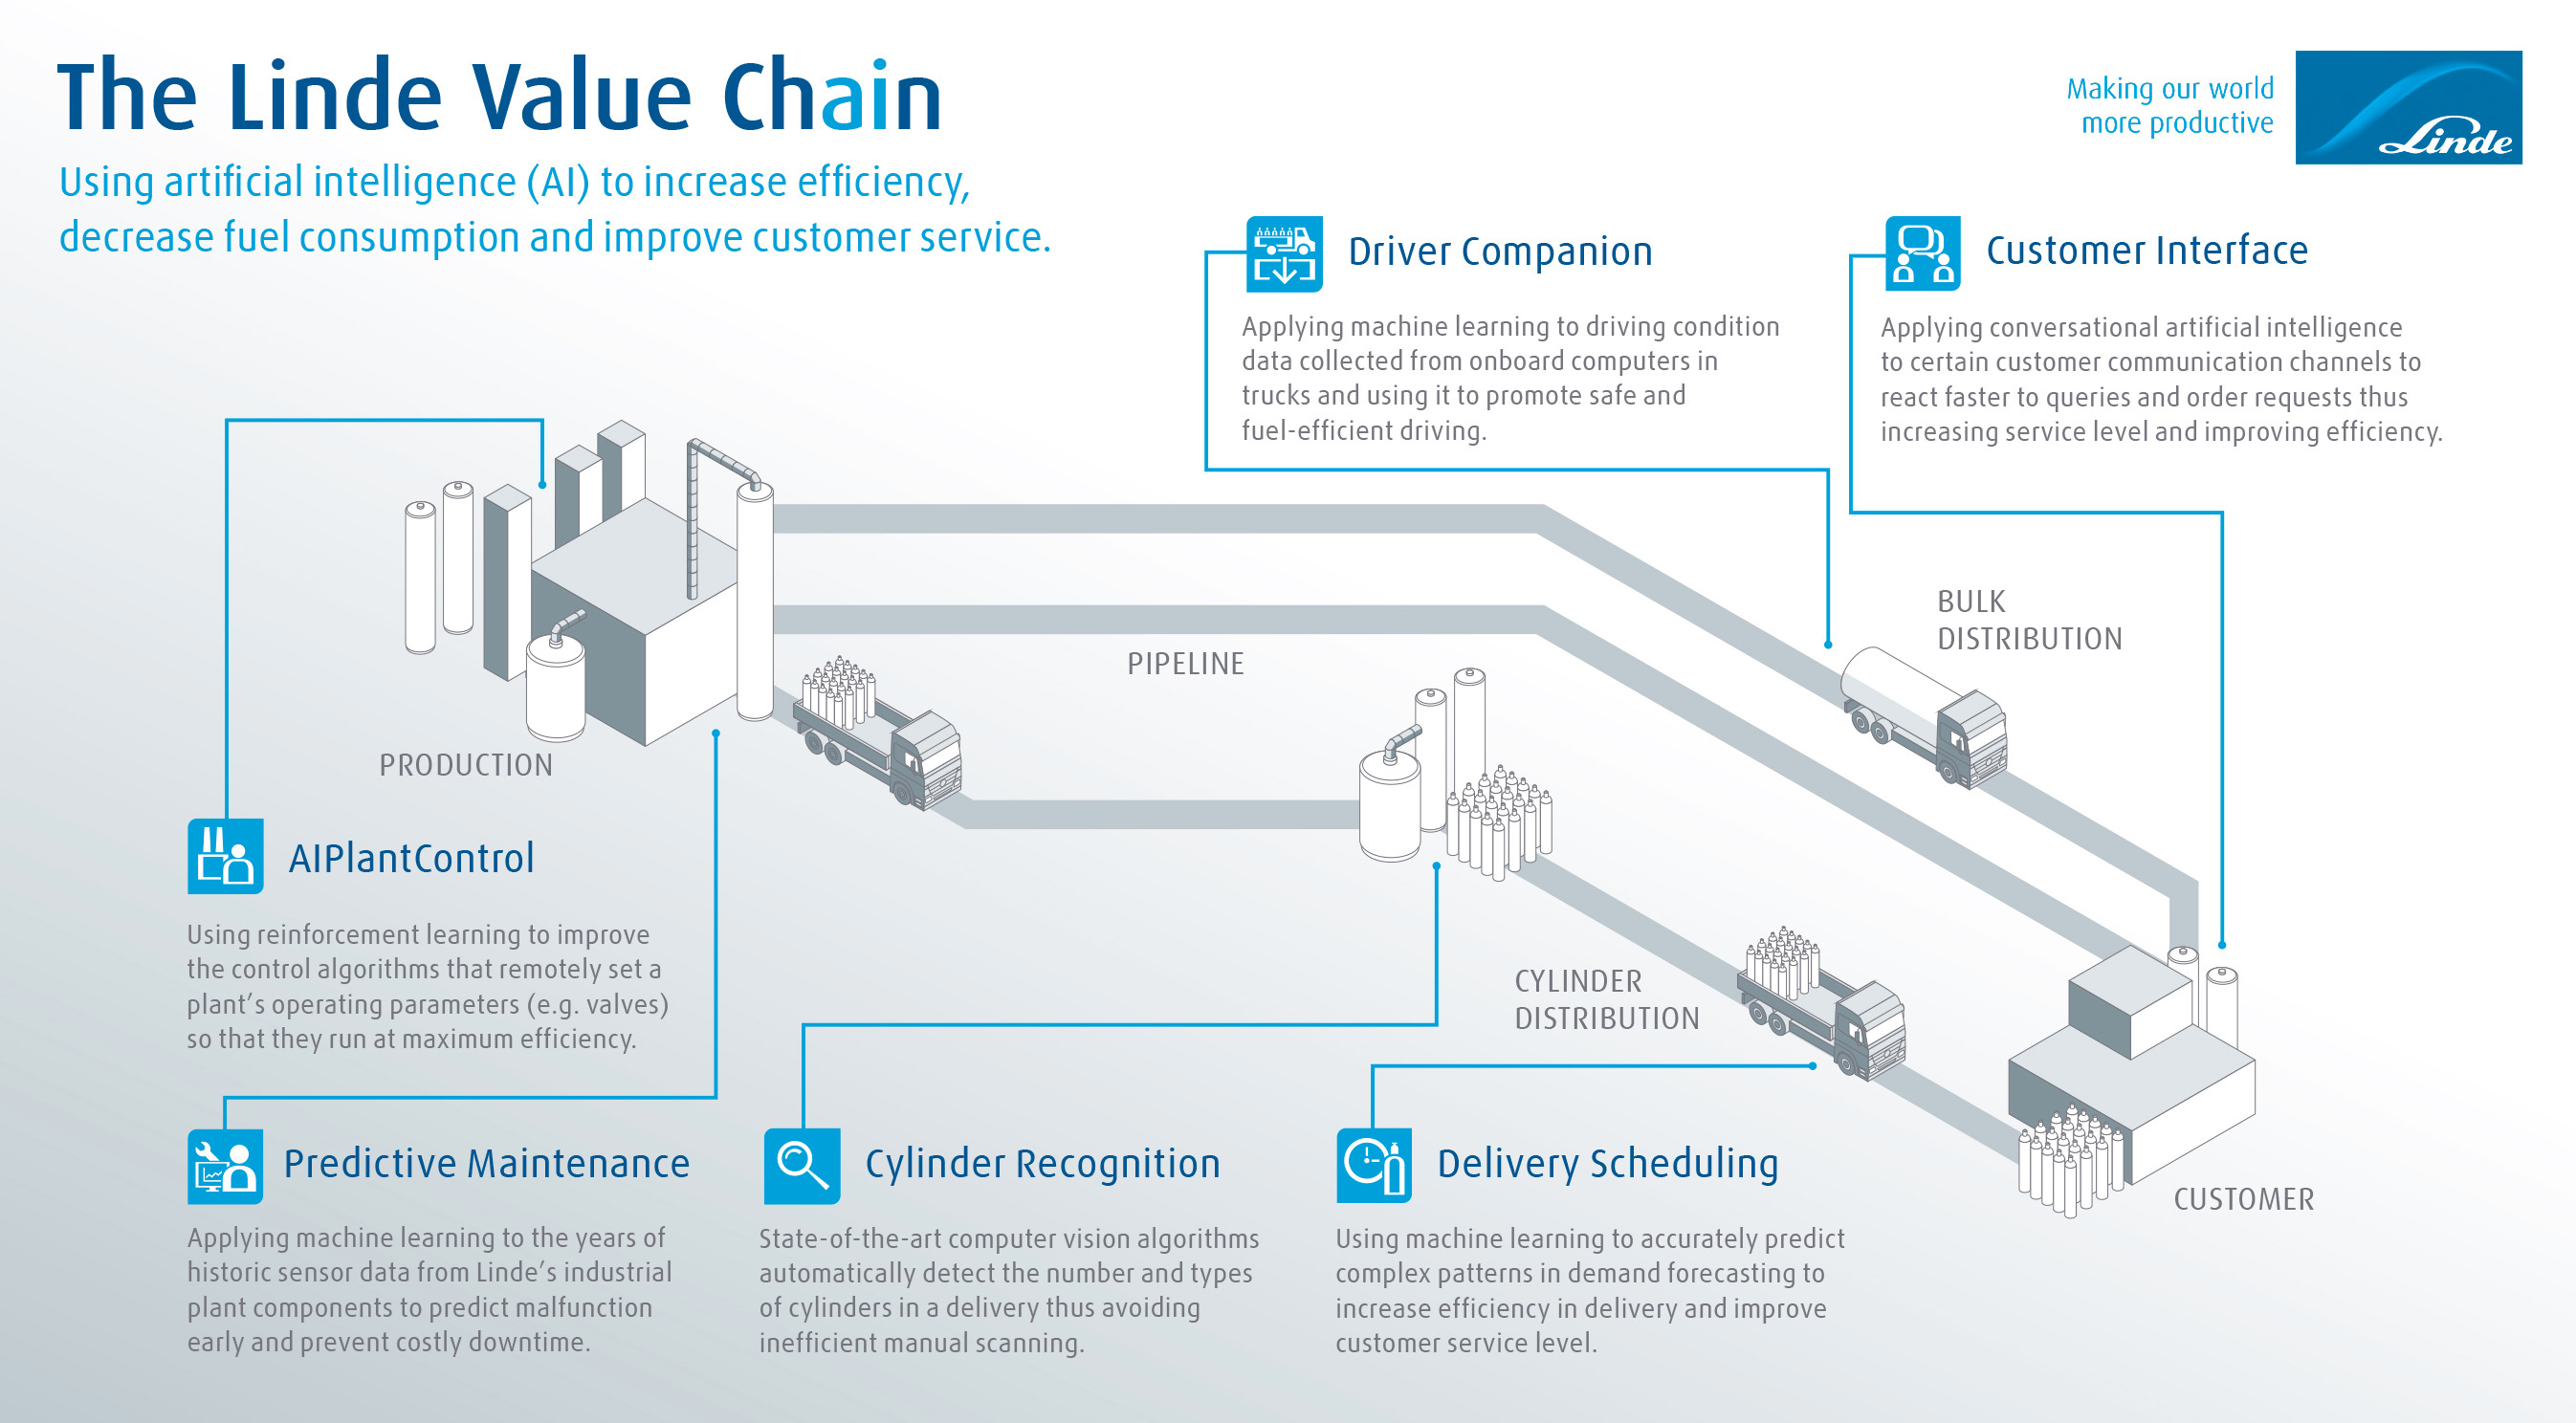 Linde Value Chain infographic